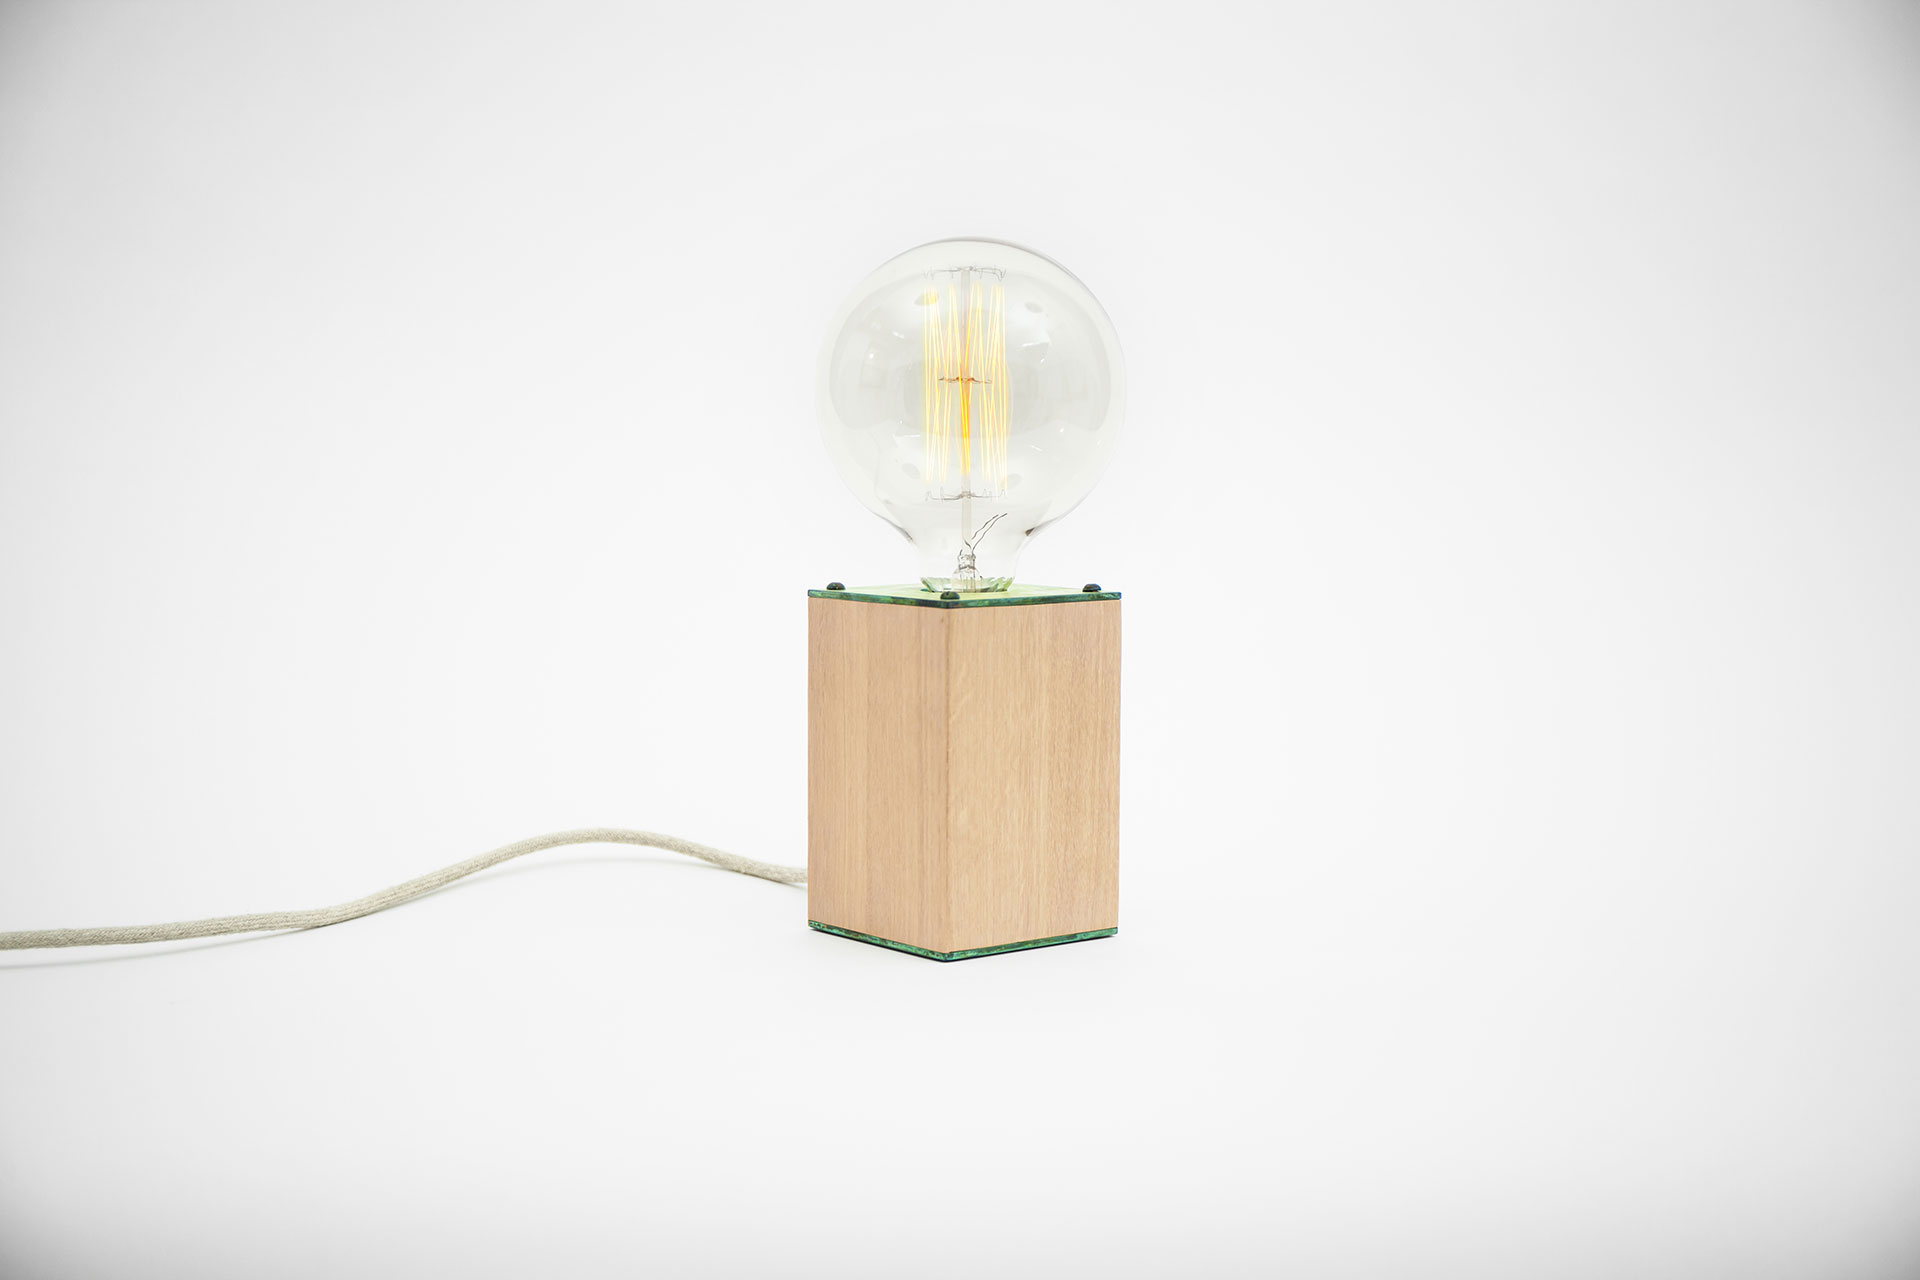 Scandinavian design bedside lamp in natural oak wood and fashionable green patina with touch dimmer and retro bulb